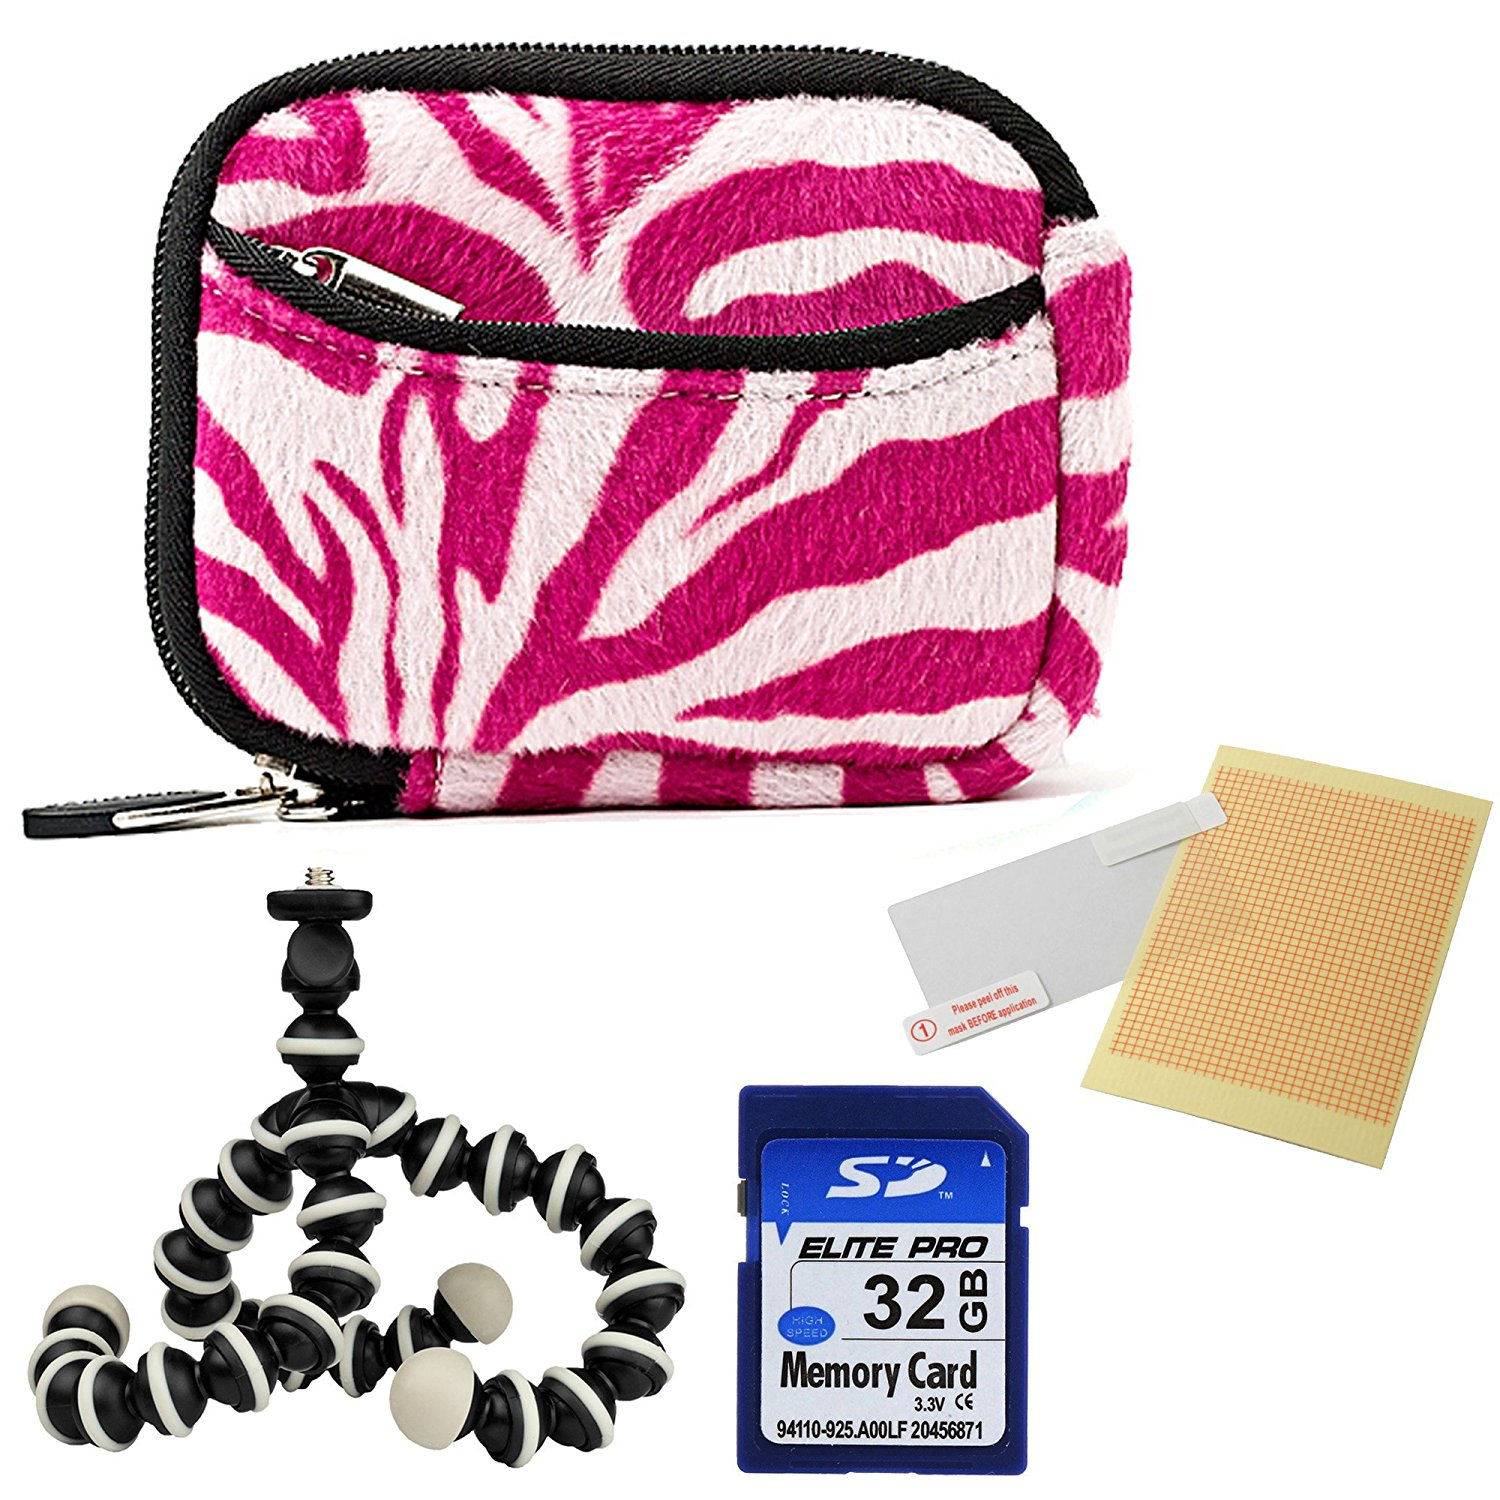 VanGoddy Mini Glove Sleeve Pouch Case for Sony Cyber Shot DSC Series Digital Cameras Magenta and Black